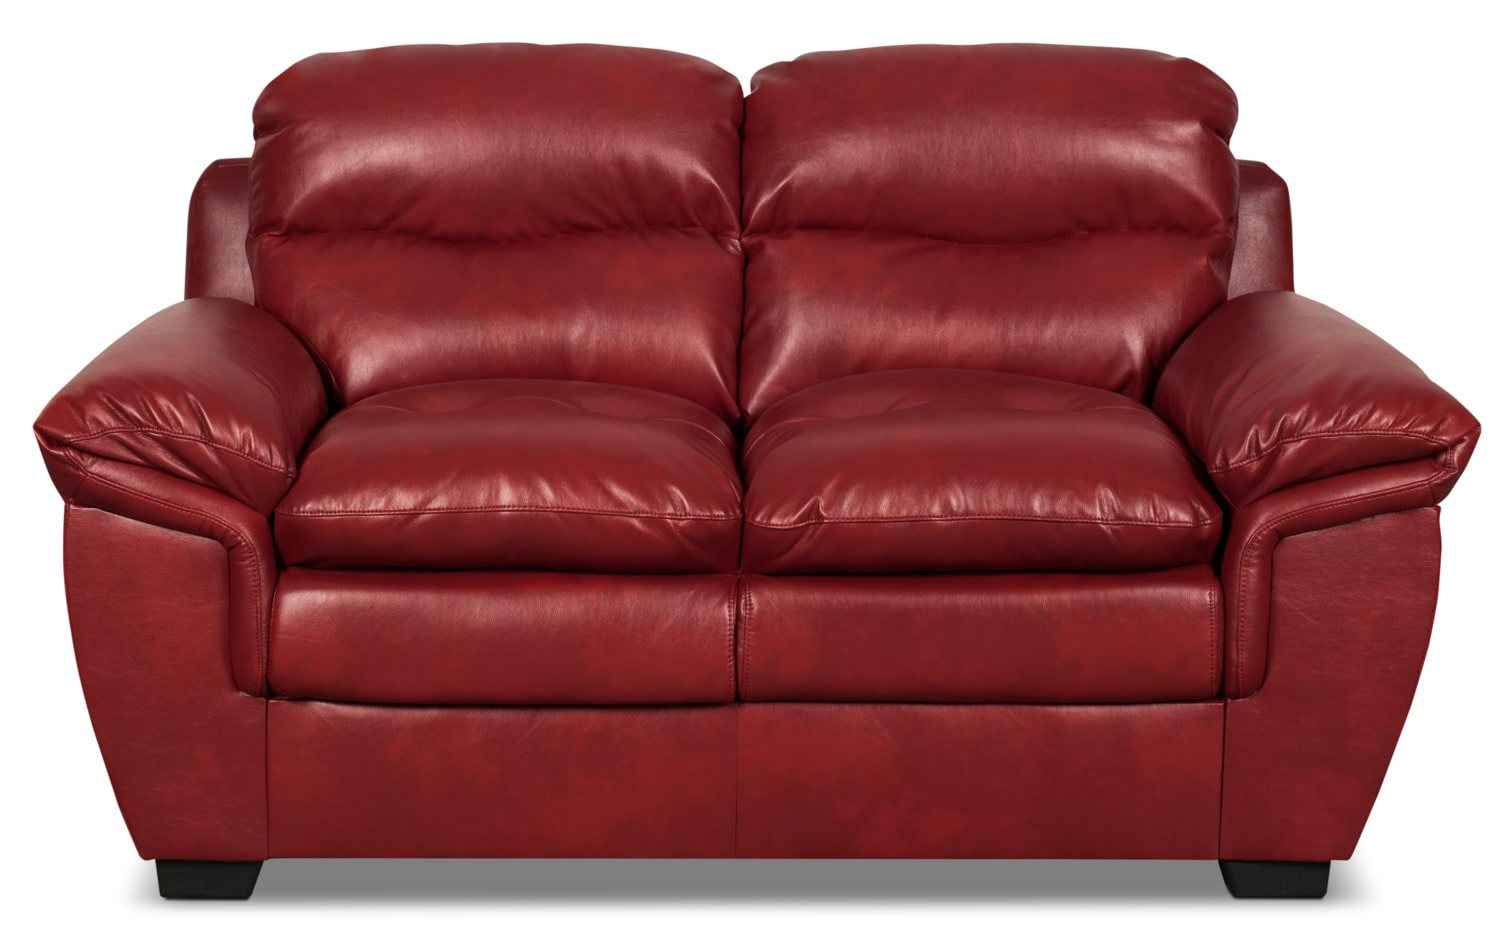 Bryon Leather-Look Fabric Loveseat – Red